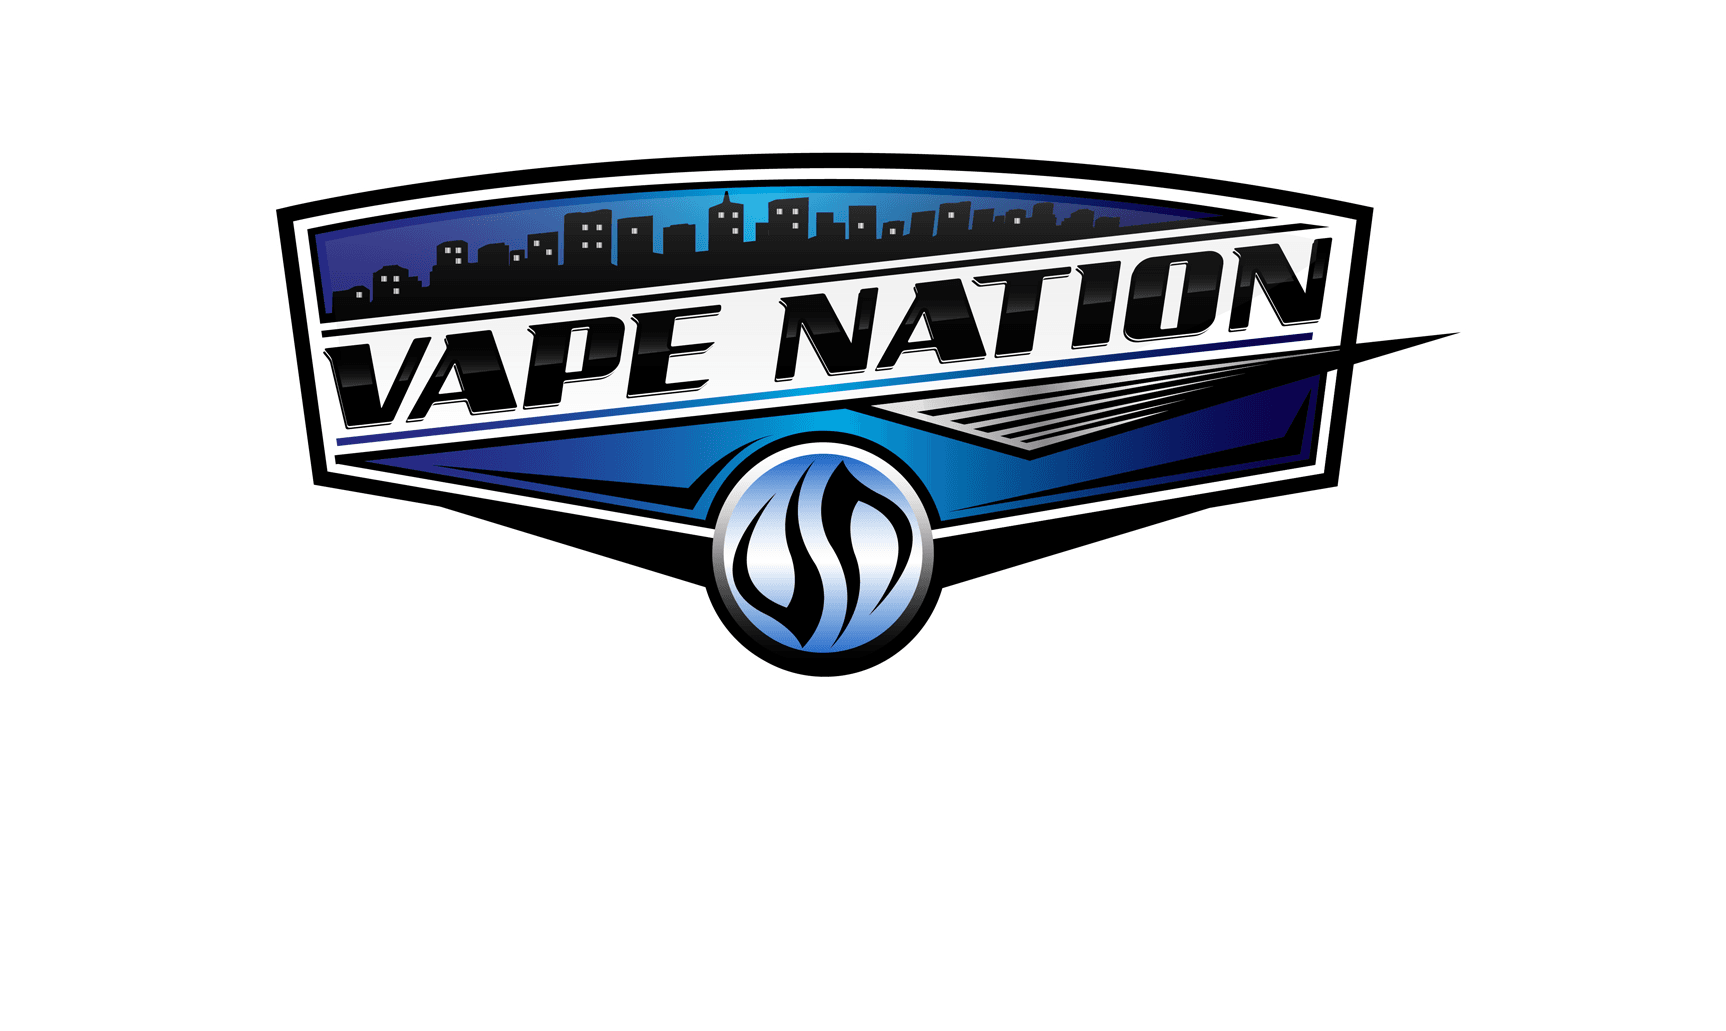 Vape nation png. Home canada